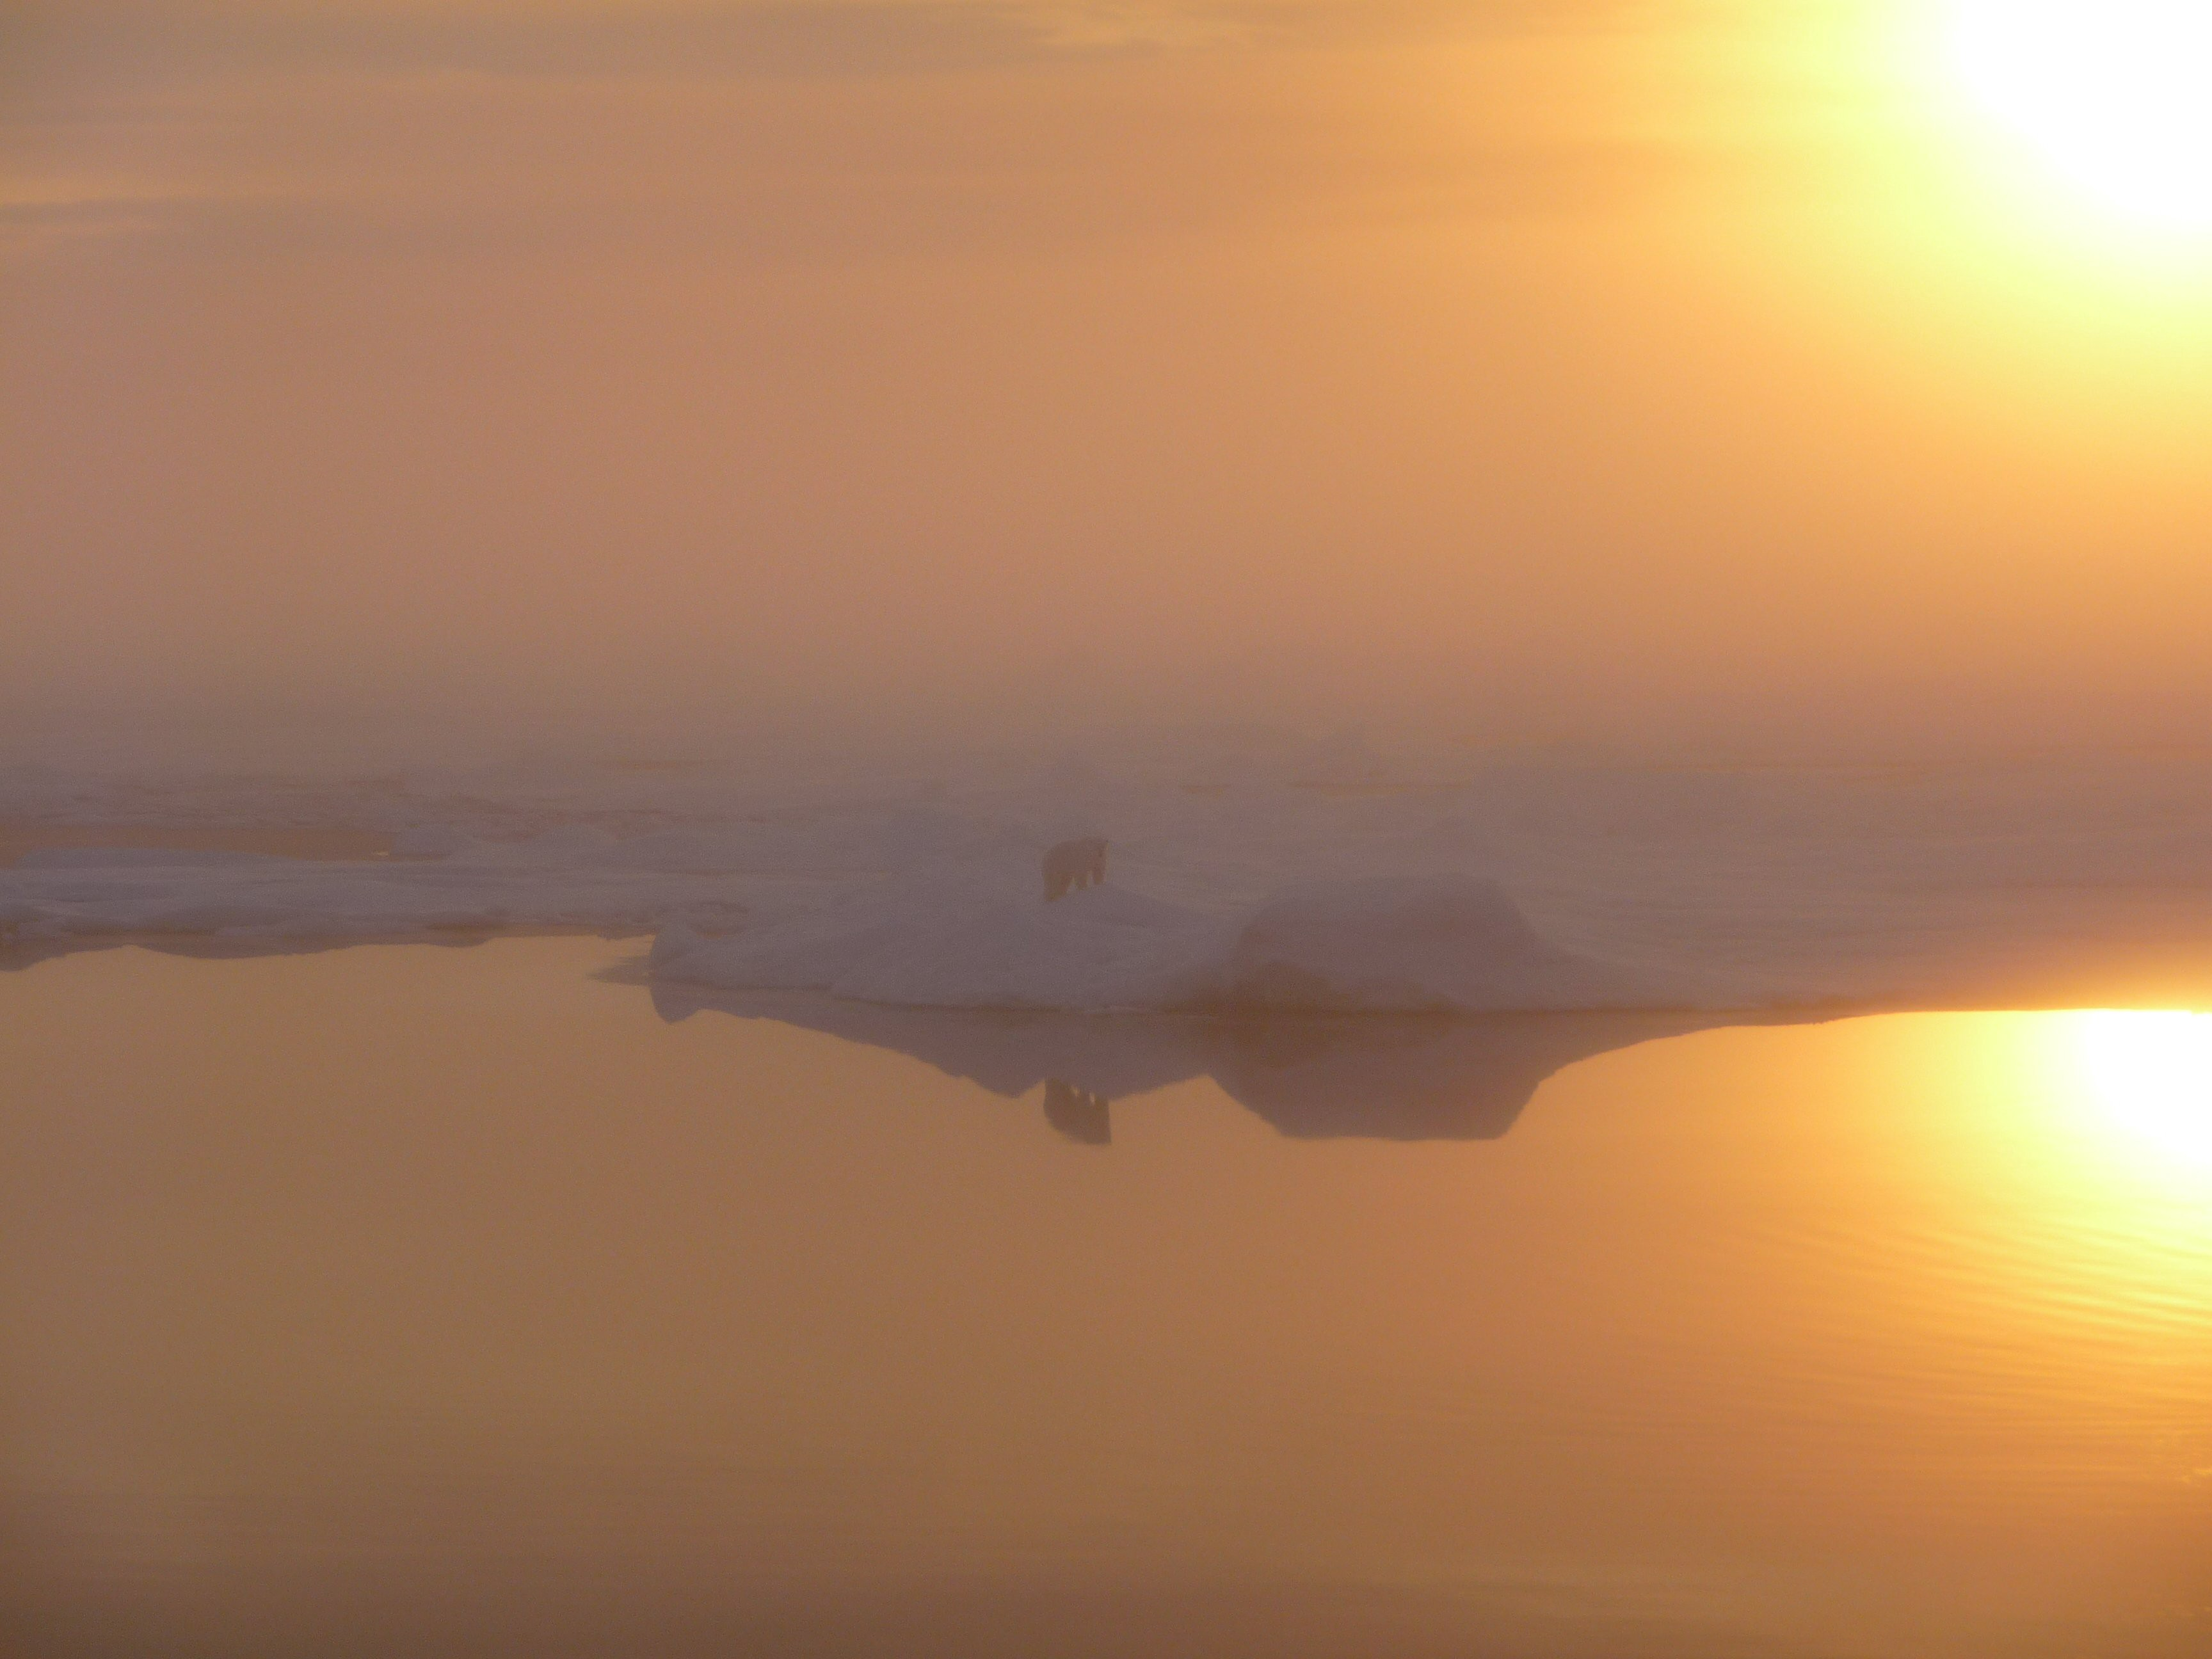 Orange sunlight in the fog reflects off of water and ice. A polar bear silhouette stands at the edge of the water.